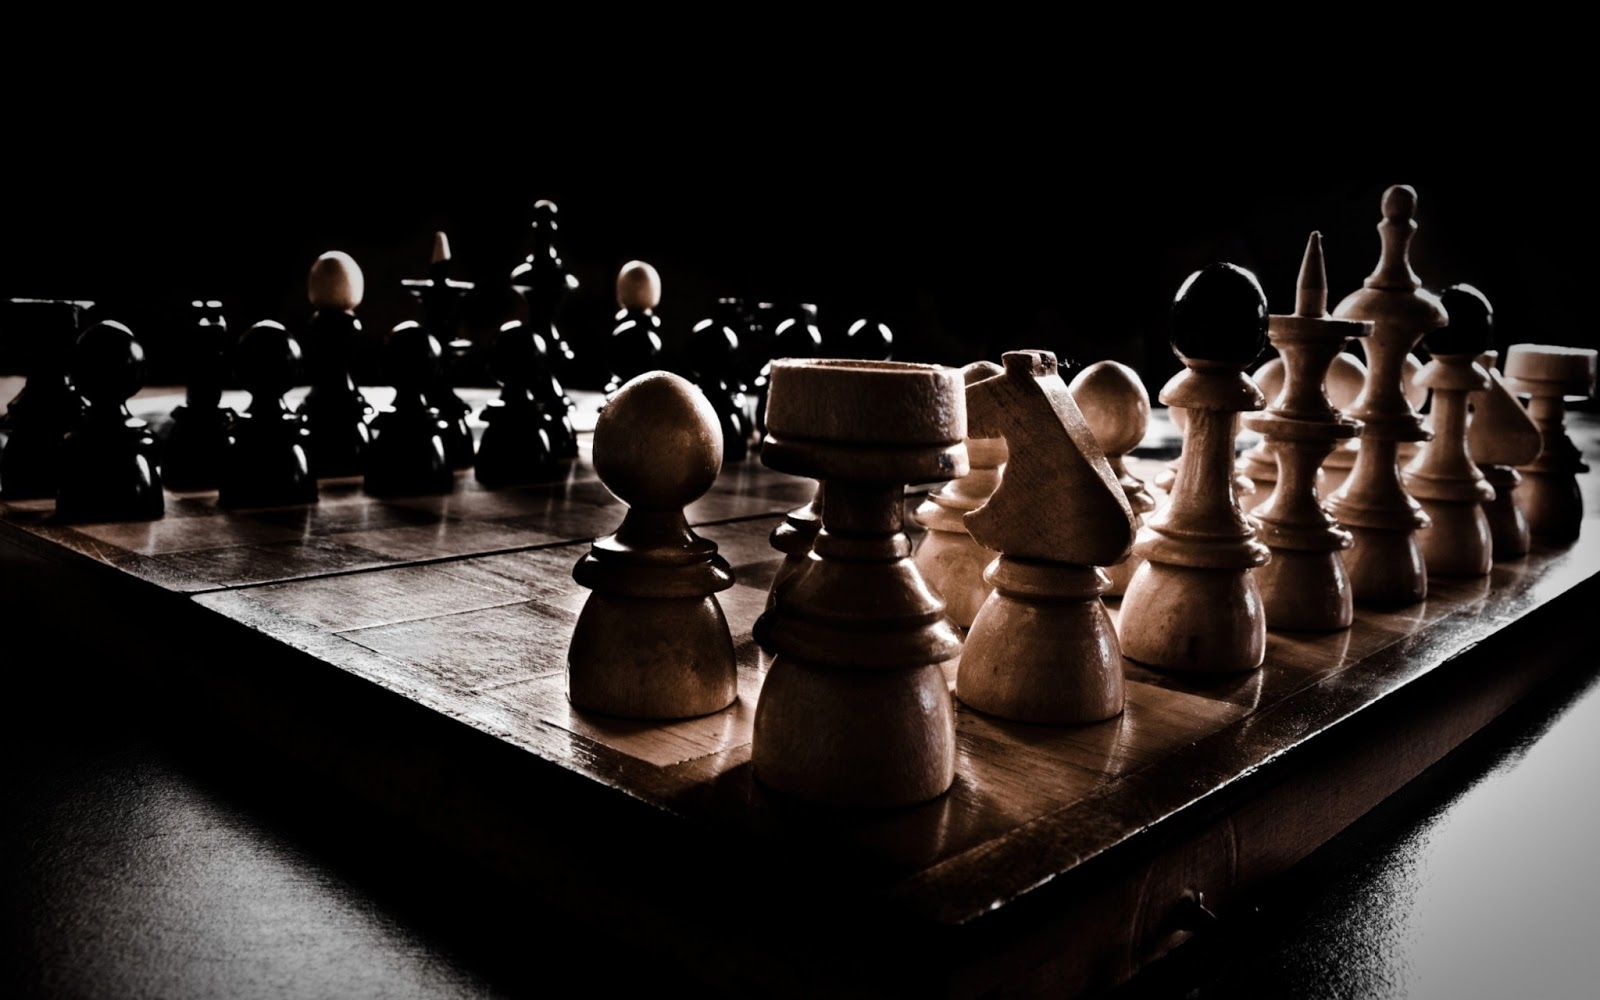 CHESS STUFFZz !!: HD Cool Chess Wallpapers For Desktop..